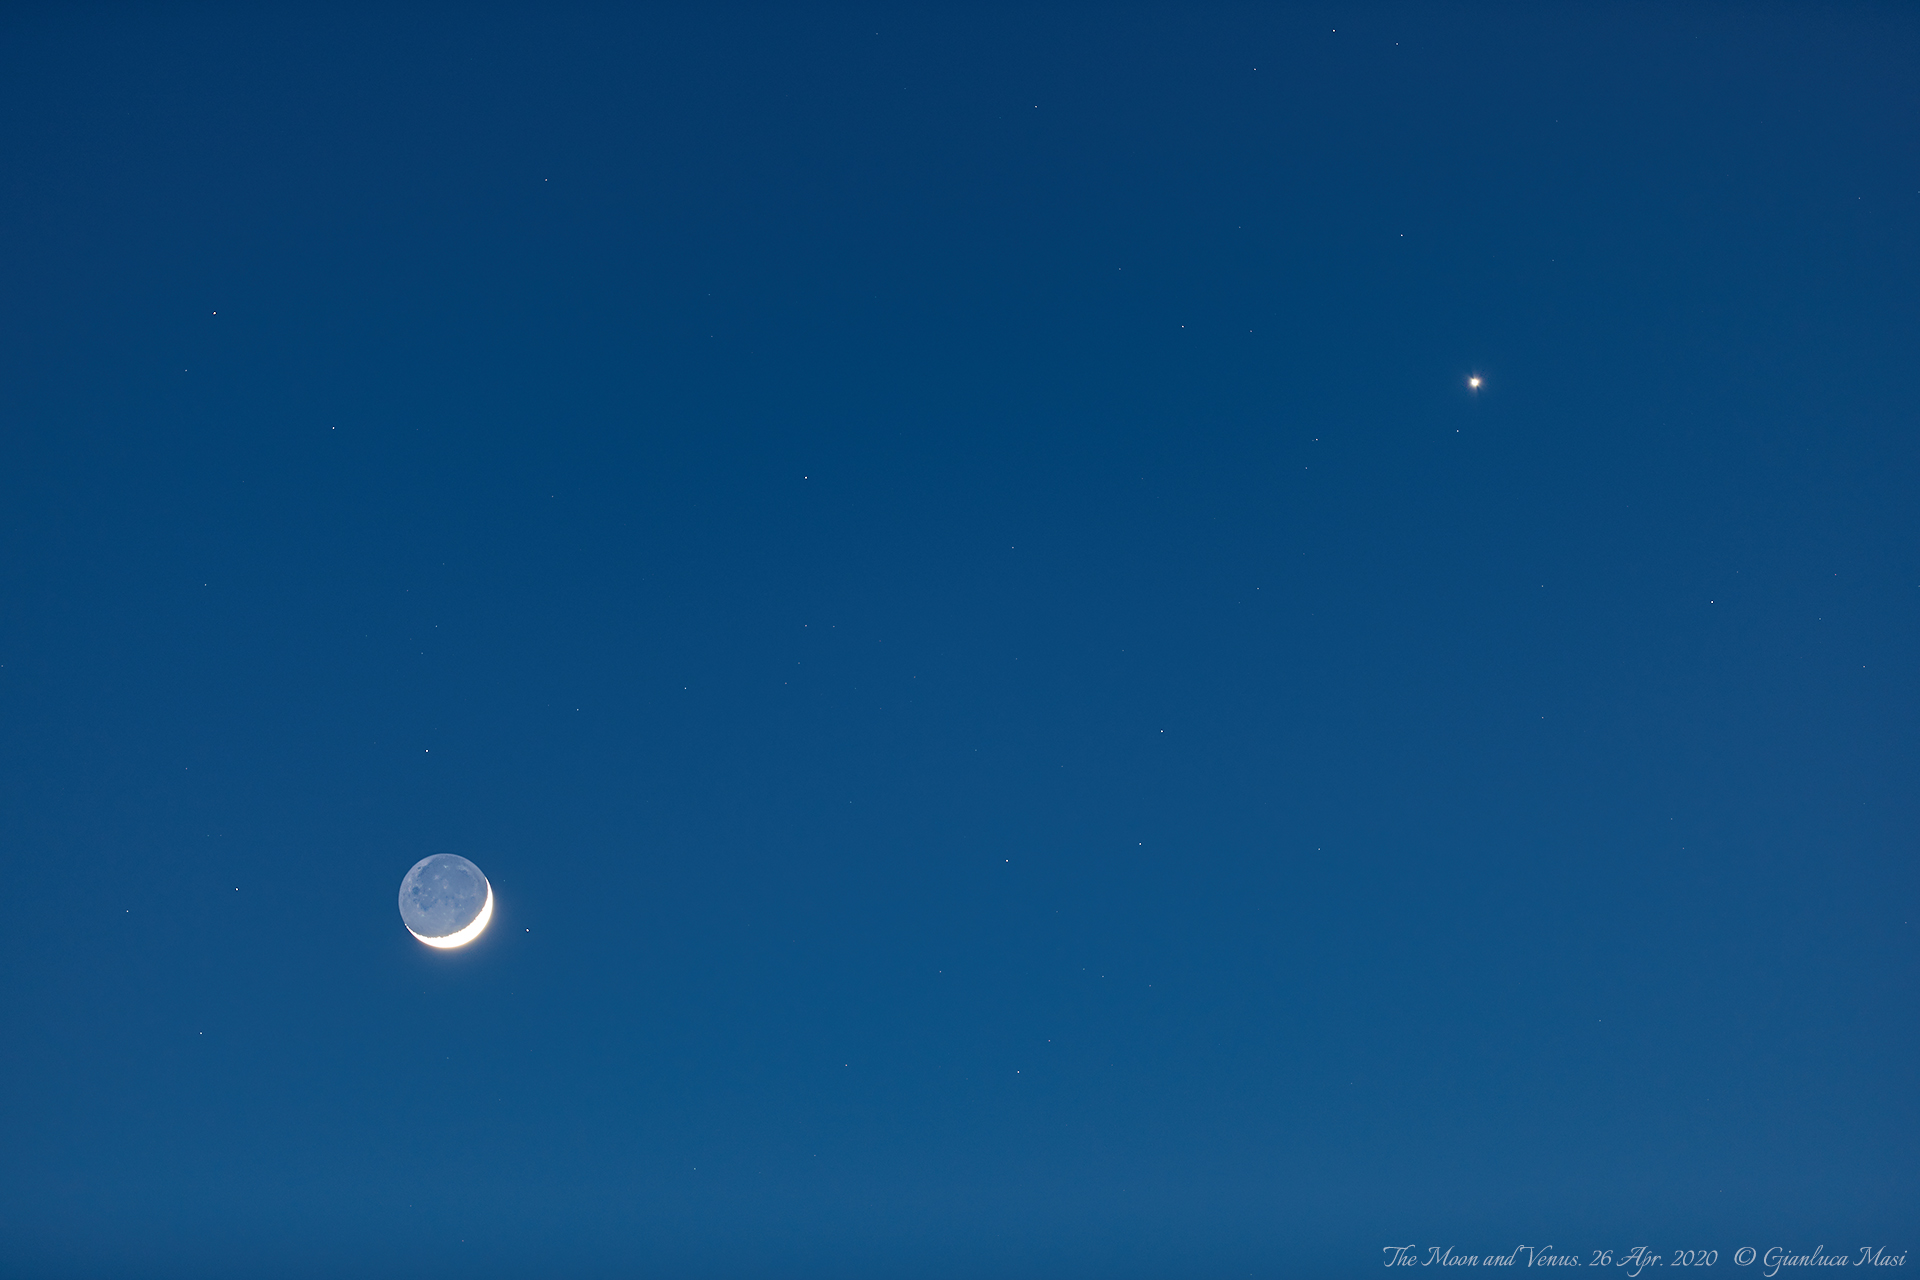 The Moon and planet Venus. 26 Apr. 2020